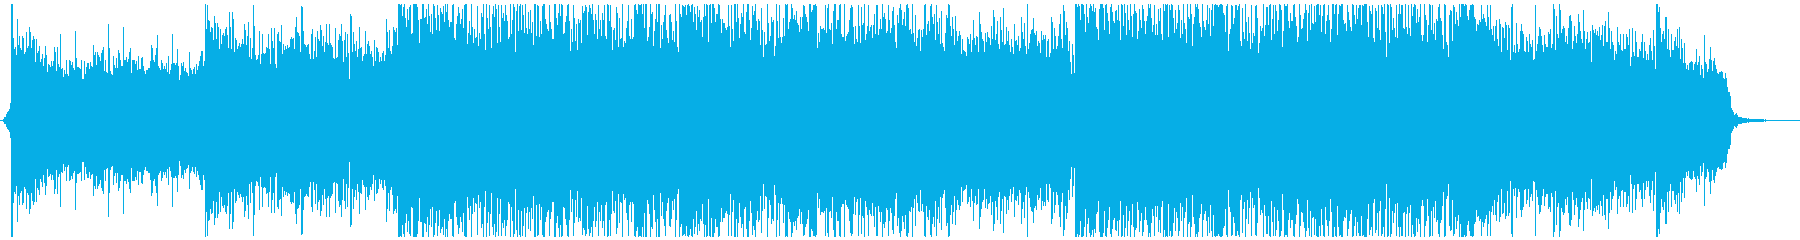 Epic Fantastic Sci-fi Battle Theme's reproduced waveform